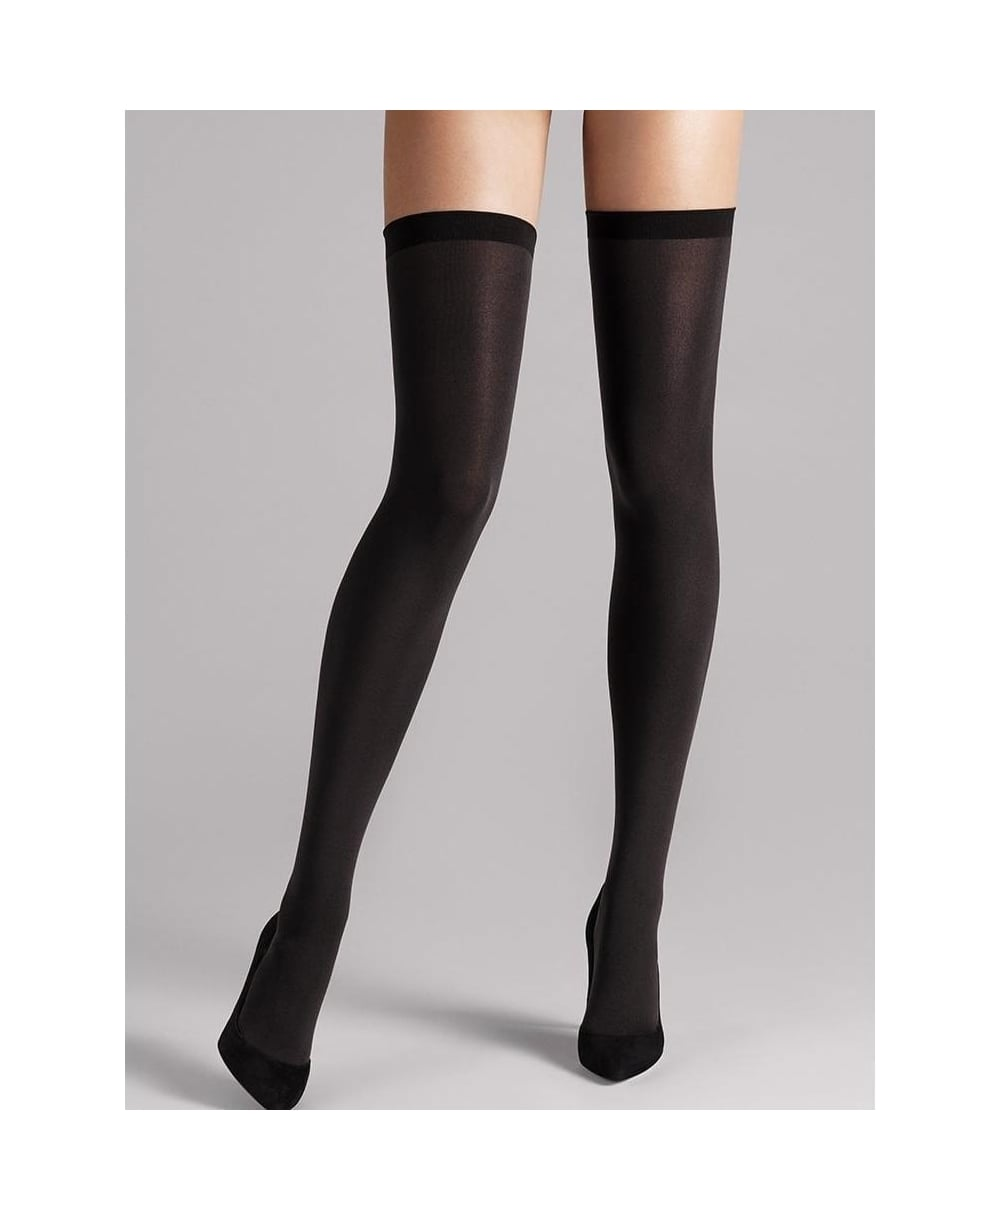 61fddd99b0f Wolford Fatal 80 Seamless Stay-Ups - Hold-Ups from luxury-legs.com UK